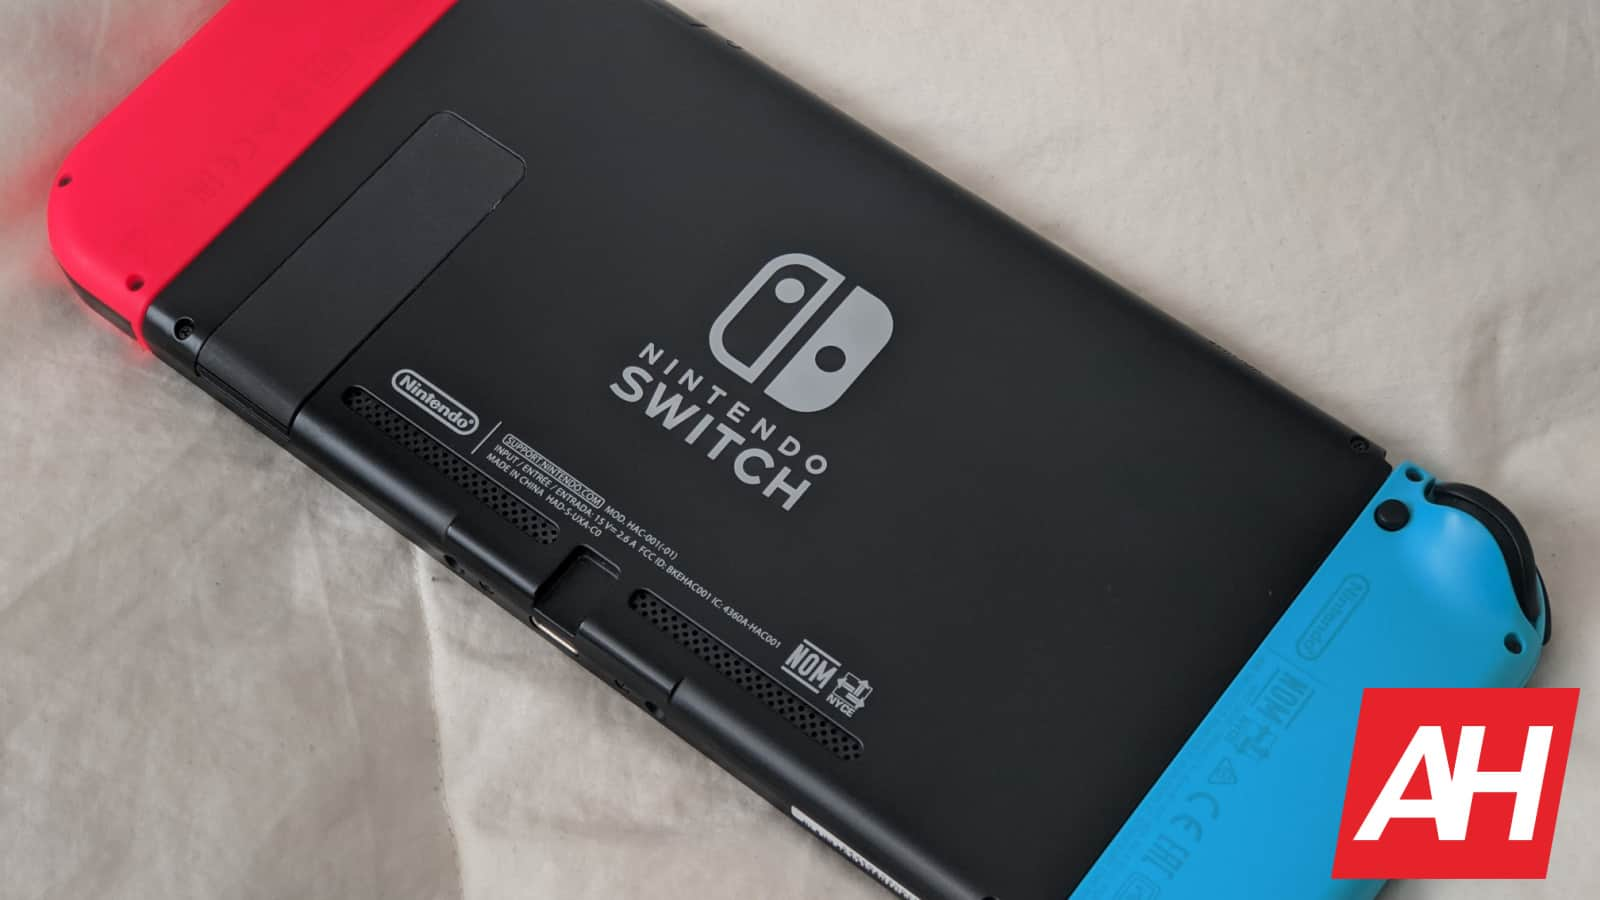 Nintendo is uncertain whether it can make enough switch consoles